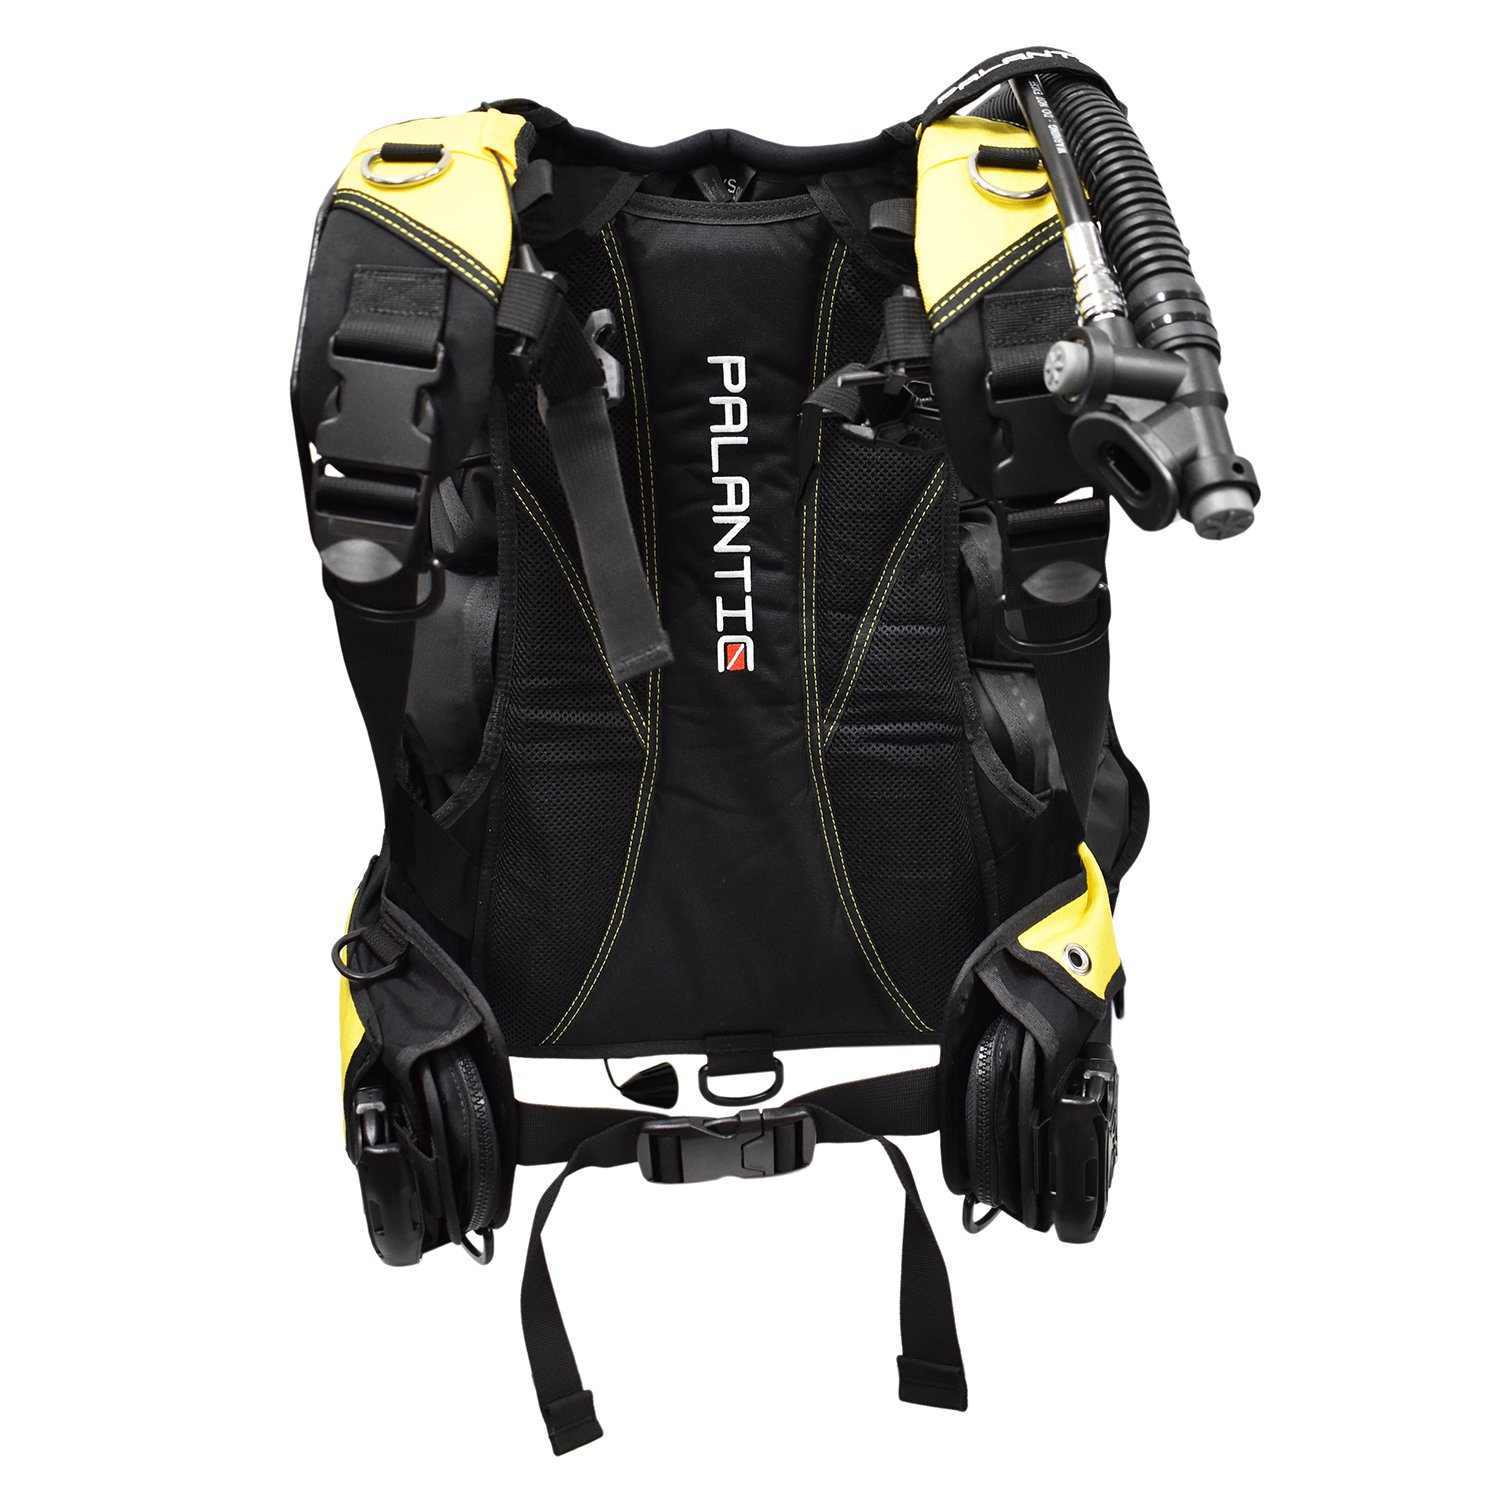 Palantic Traveler Scuba Choice Traveler Travel BCD, Yellow, Medium/Large by Palantic